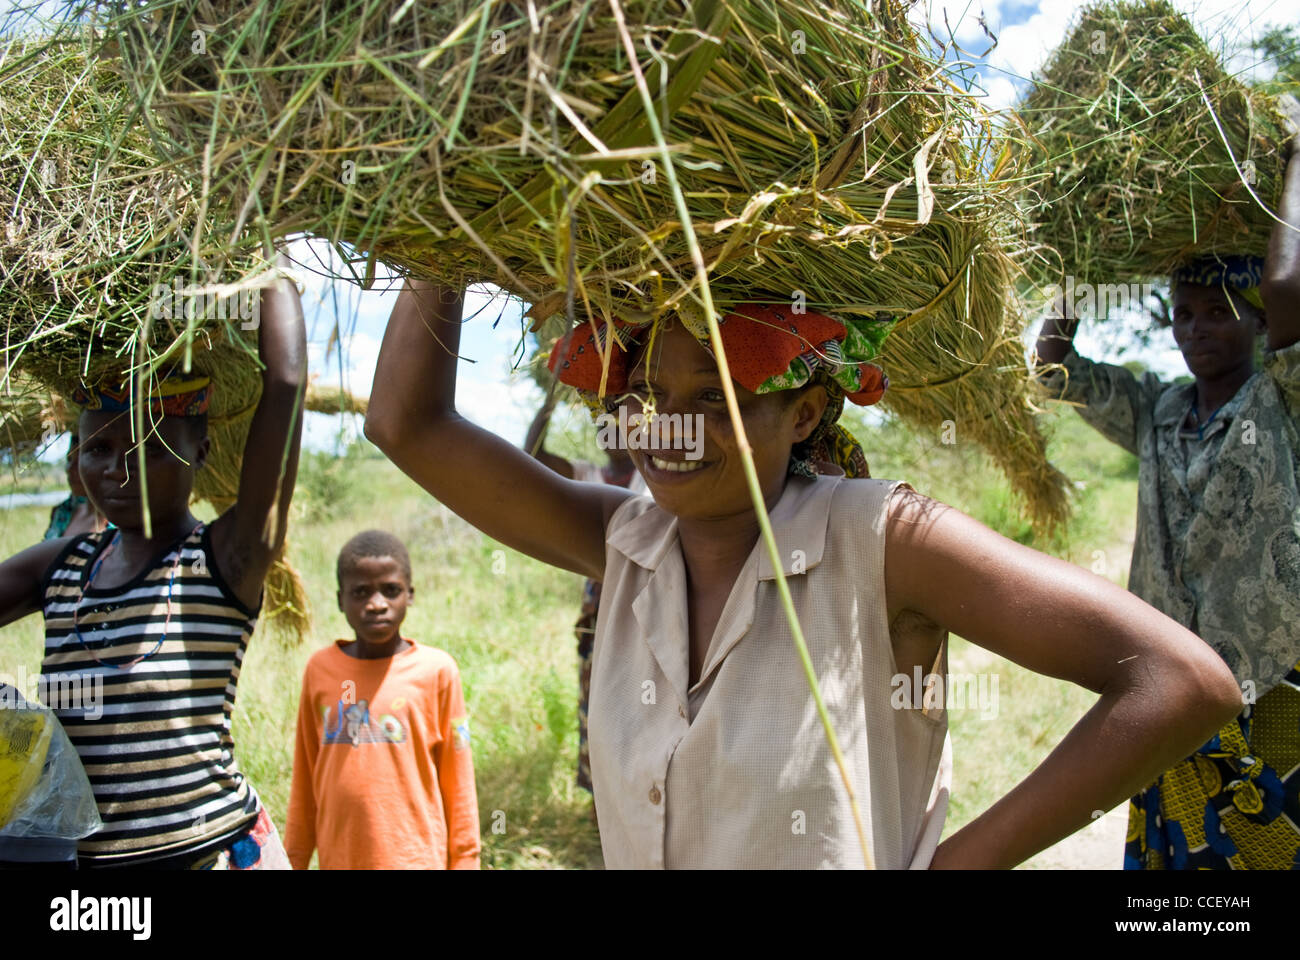 A young Zambian women carrying cut grass used for thatching. - Stock Image